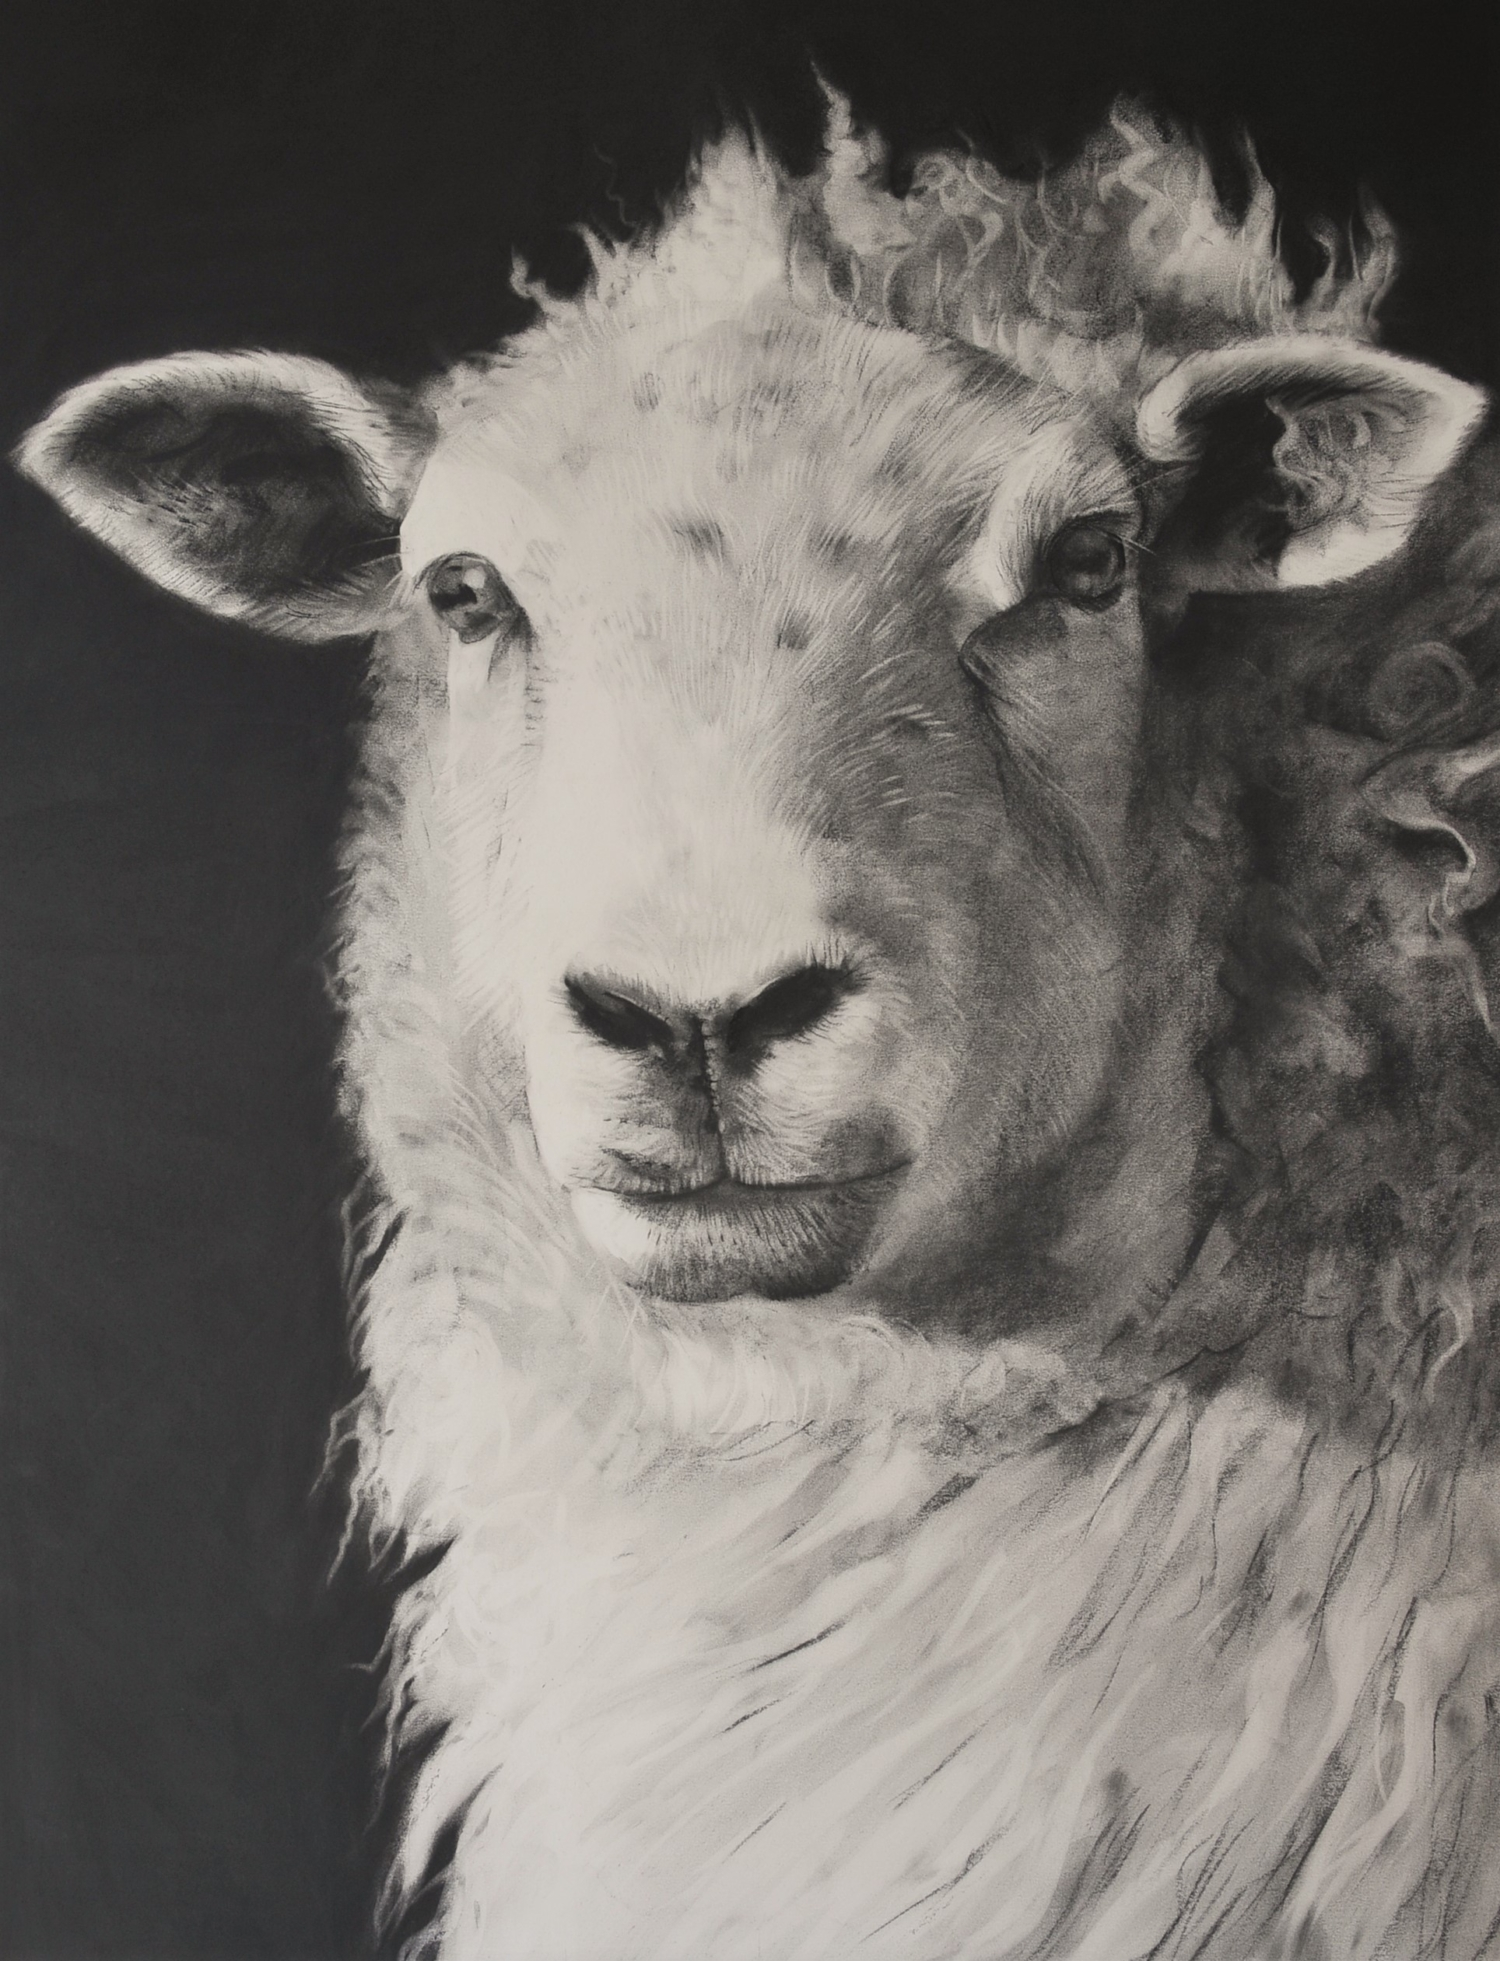 Charcoal drawing of a sheep portrait format